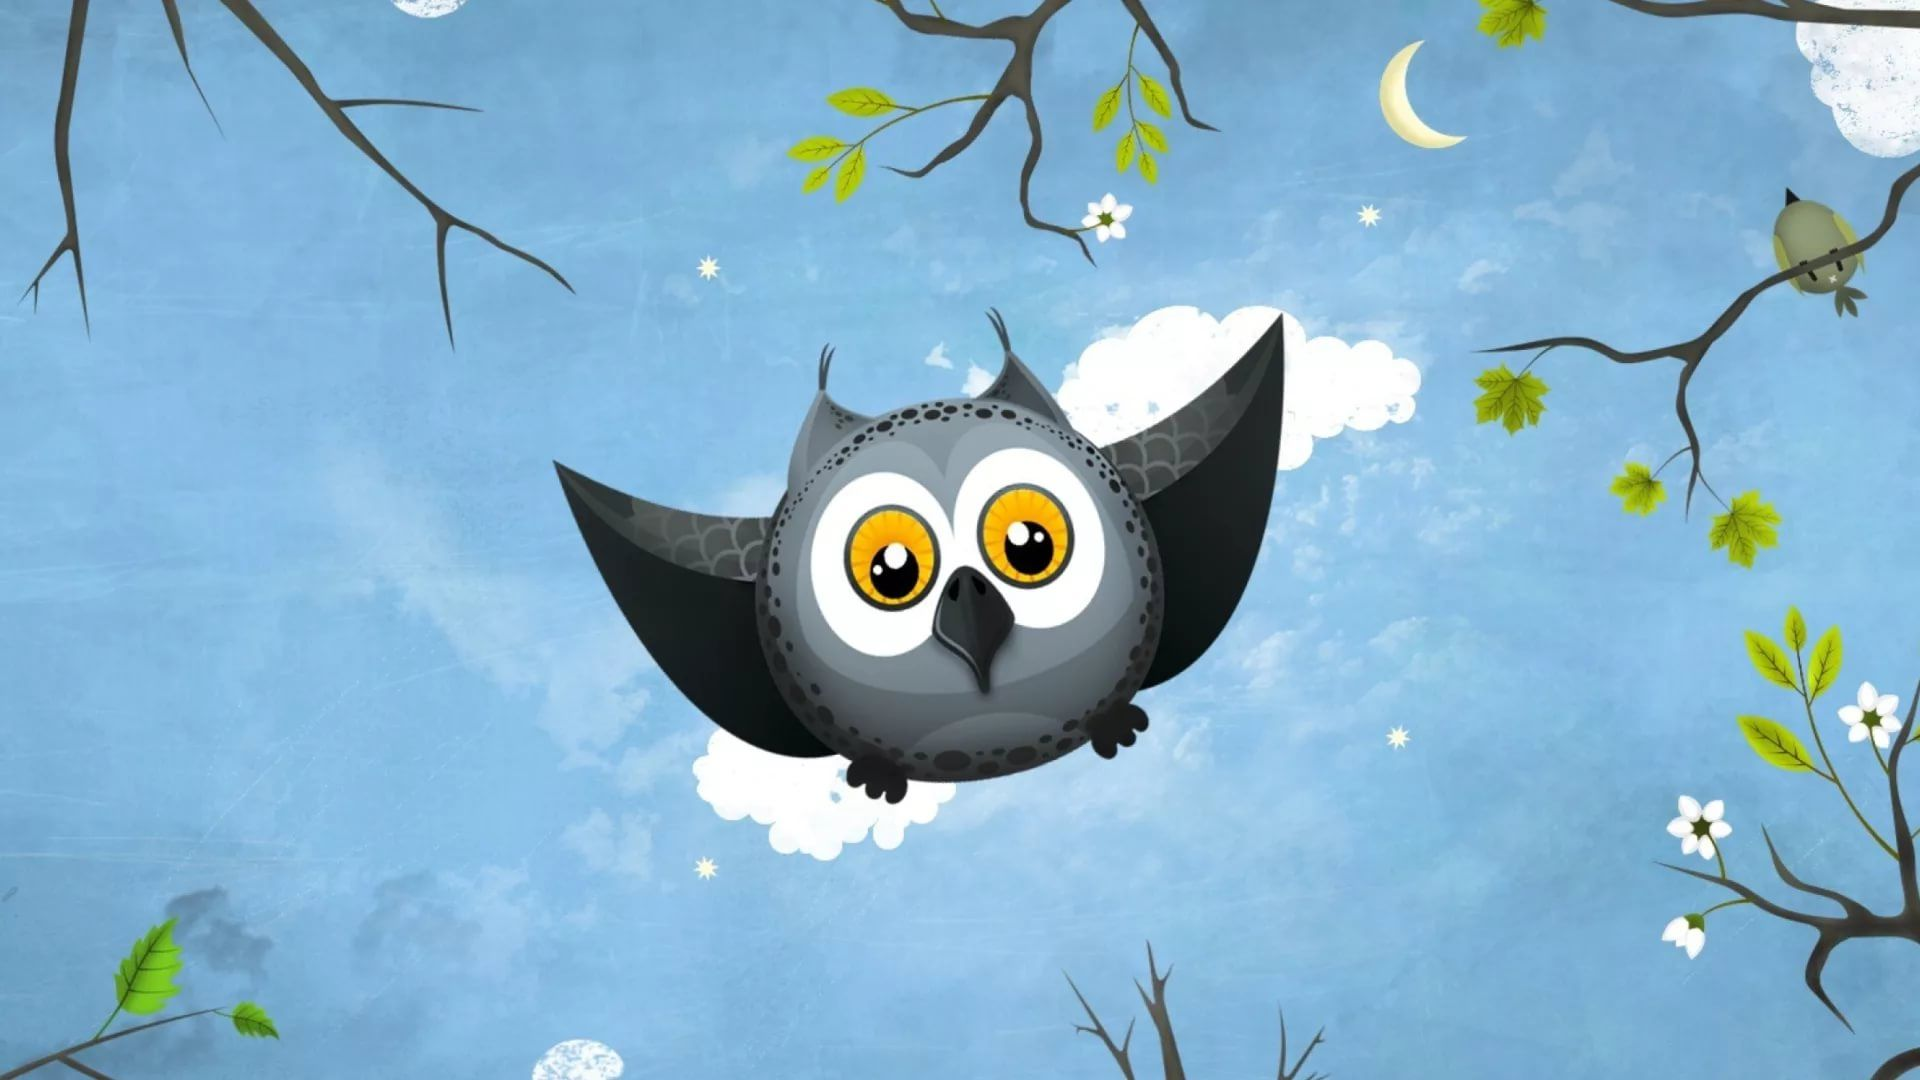 Cute Owl download free wallpapers for pc in hd